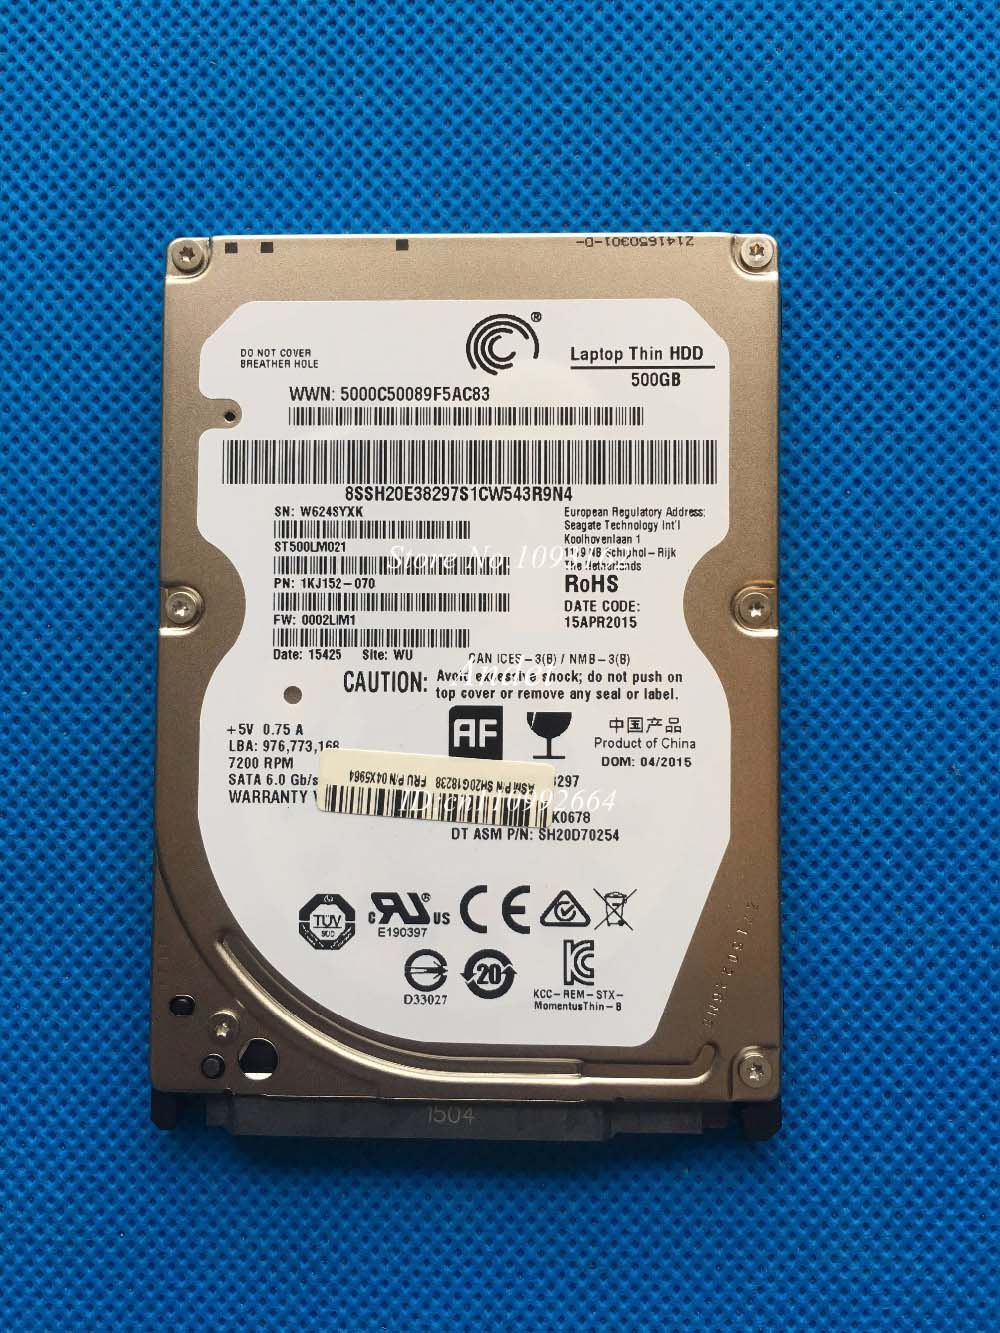 ST500LM021 500GB 7200RPM 32M Cache SATA6Gbps Laptop Hard Drive Disk SATA3 500G Laptop HDD 2.5 7mm Thick 2.5 Inch hot sale 1 year warranty for the ds3400 x3650 x3550 39m4558 7200 rpm sata 3 5 500gb hdd new